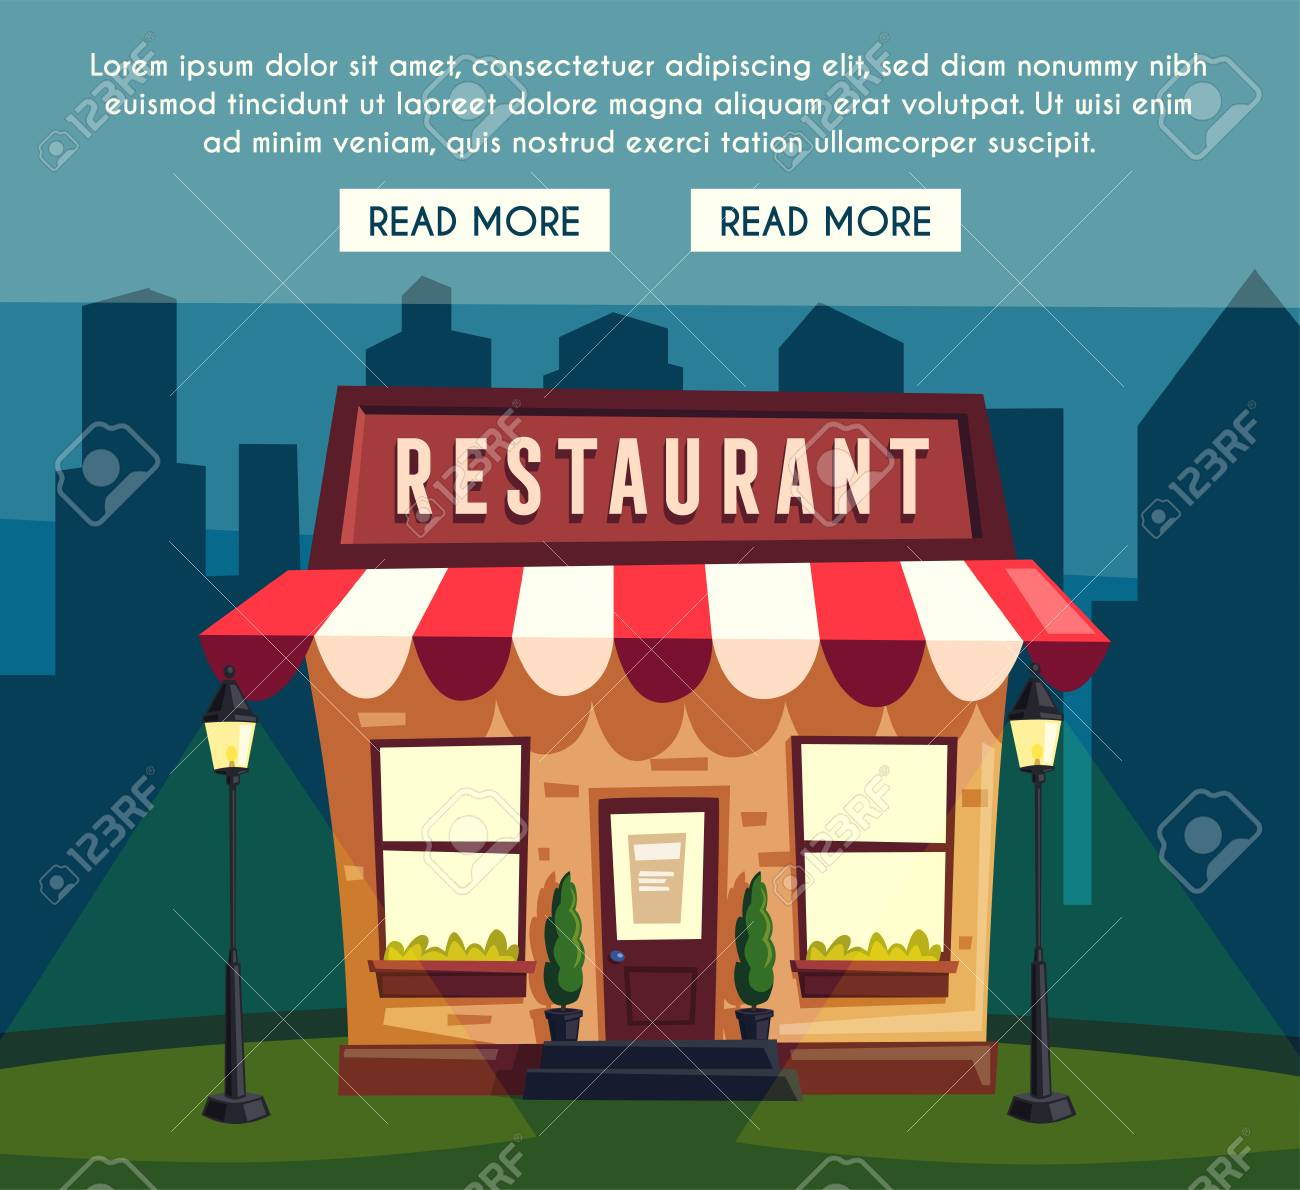 Restaurant Or Cafe At Night Exterior Building Cartoon Illustration Food And Drink Stock